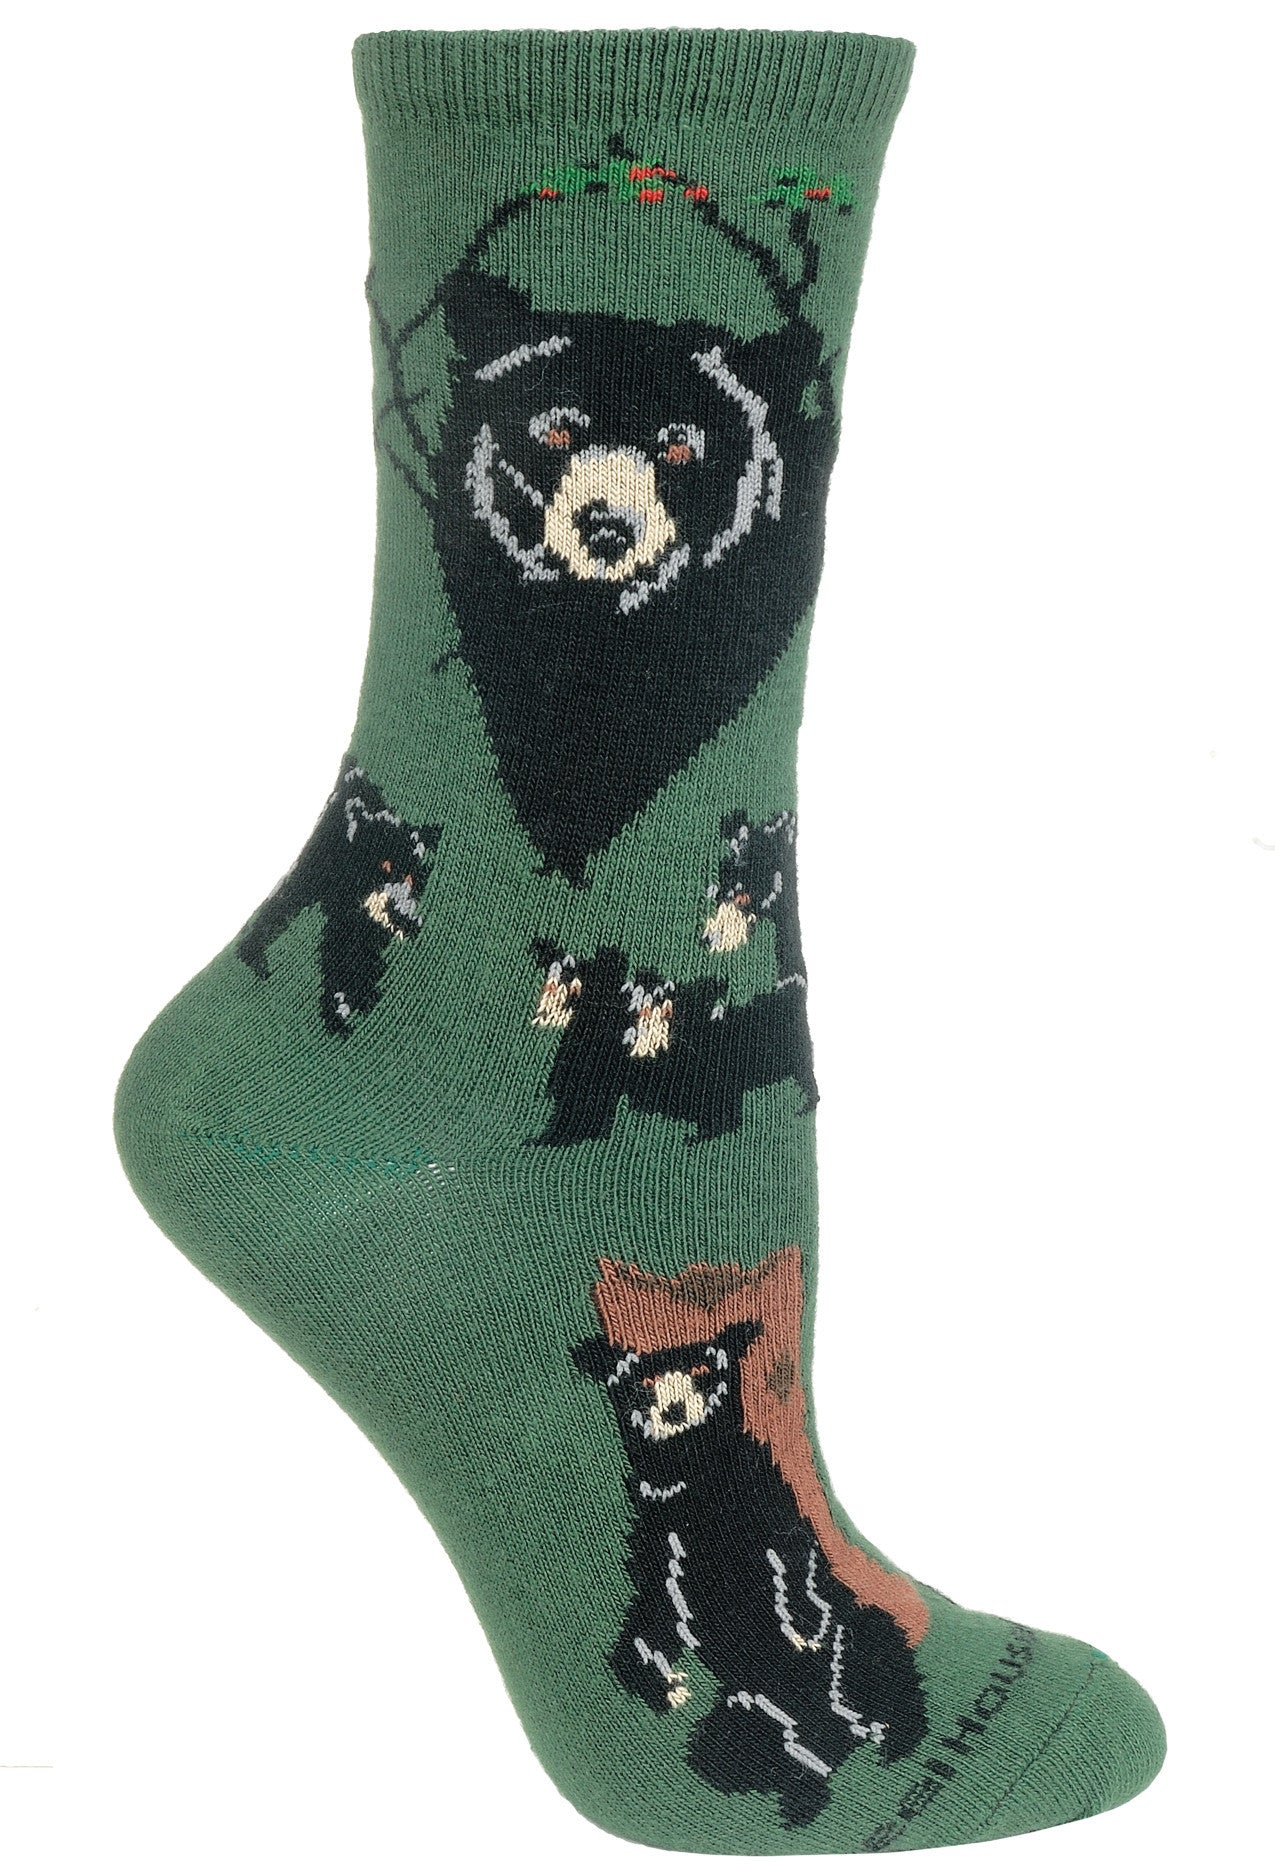 Black Bear on Hunter Green Crew Socks